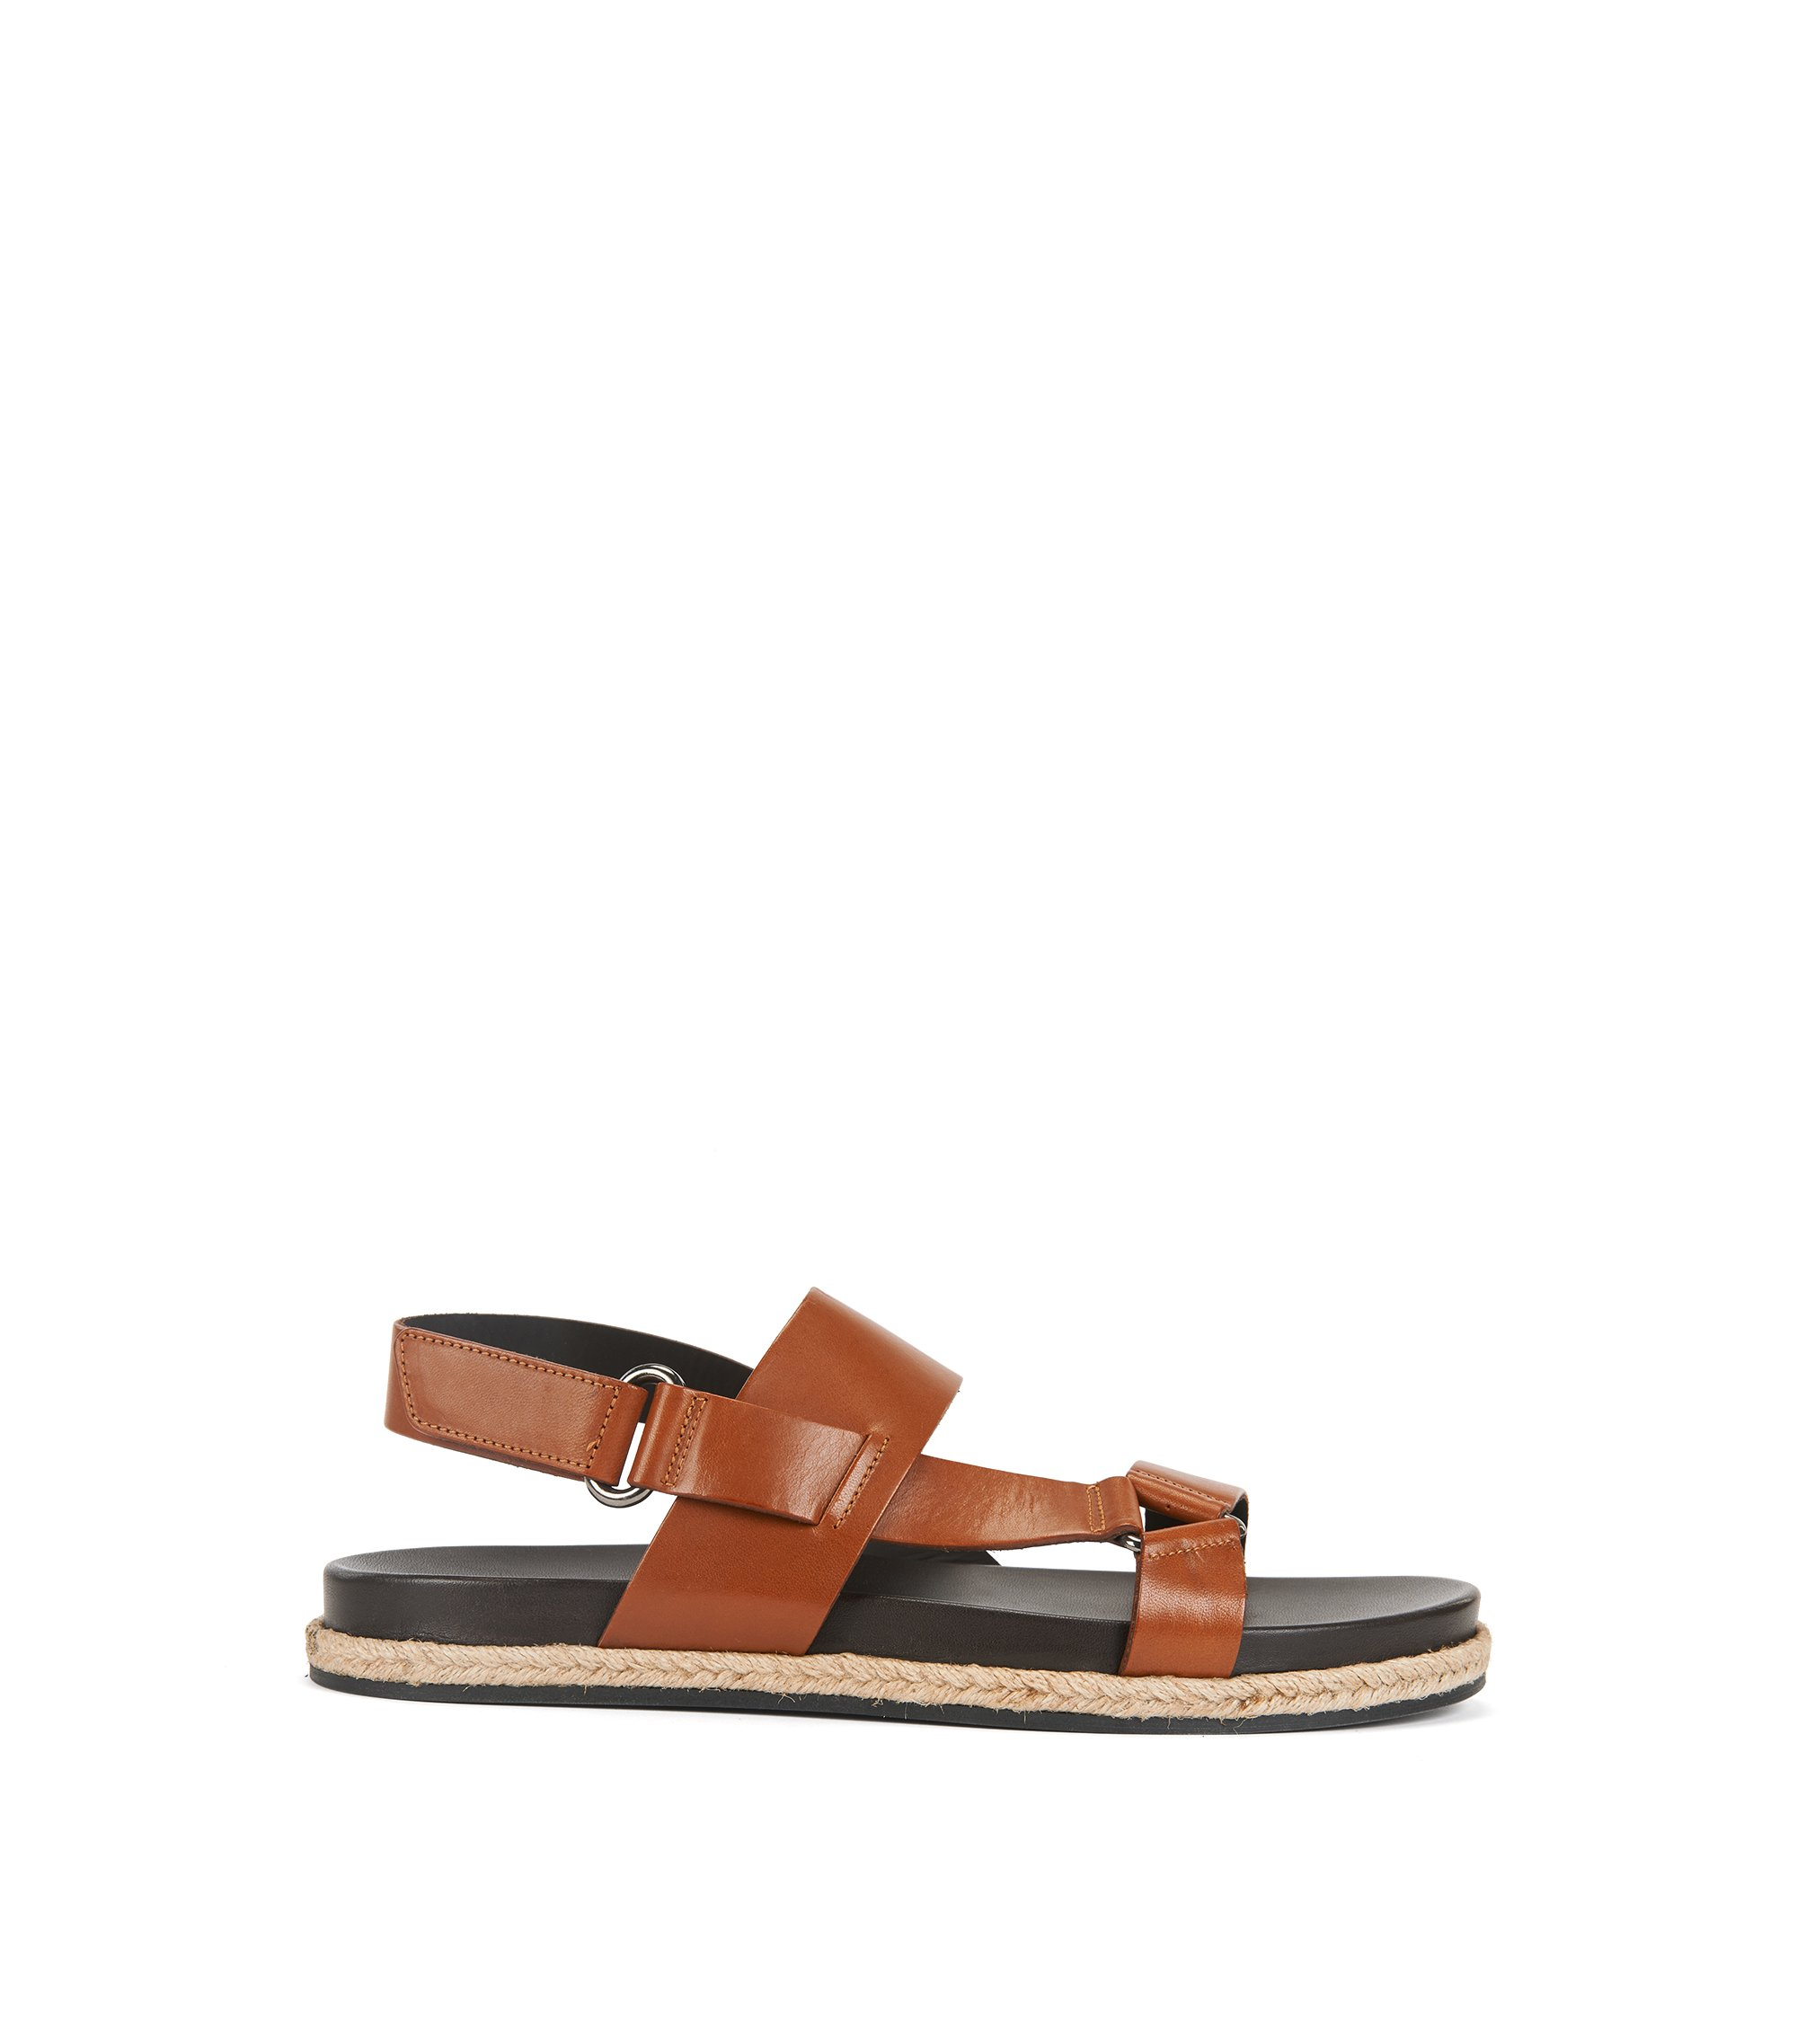 Calf-leather sandals with rope welt detail, Brown